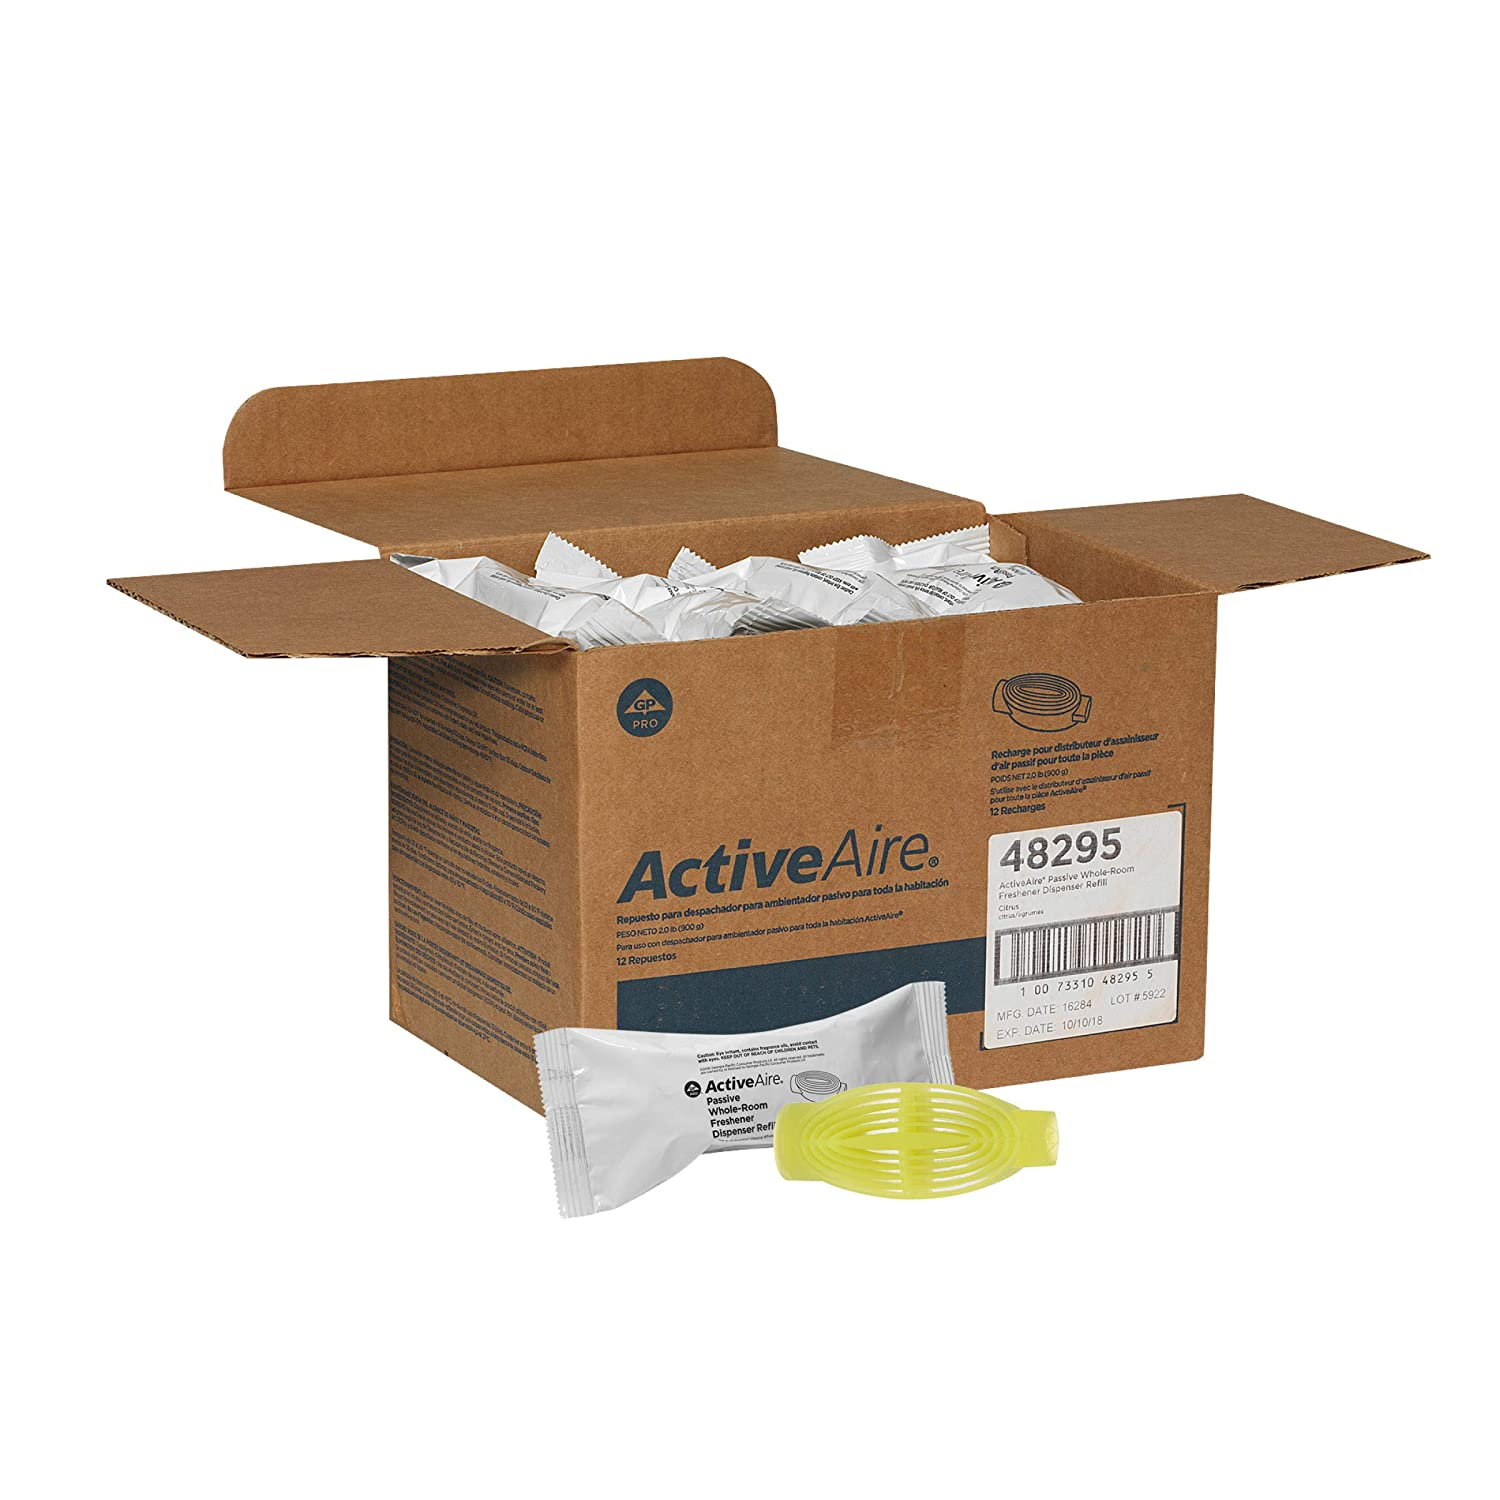 ActiveAire Passive Whole-Room Freshener Dispenser Refill by GP PRO (Georgia-Pacific), Citrus, 48295, 12 Cartridges Per Case